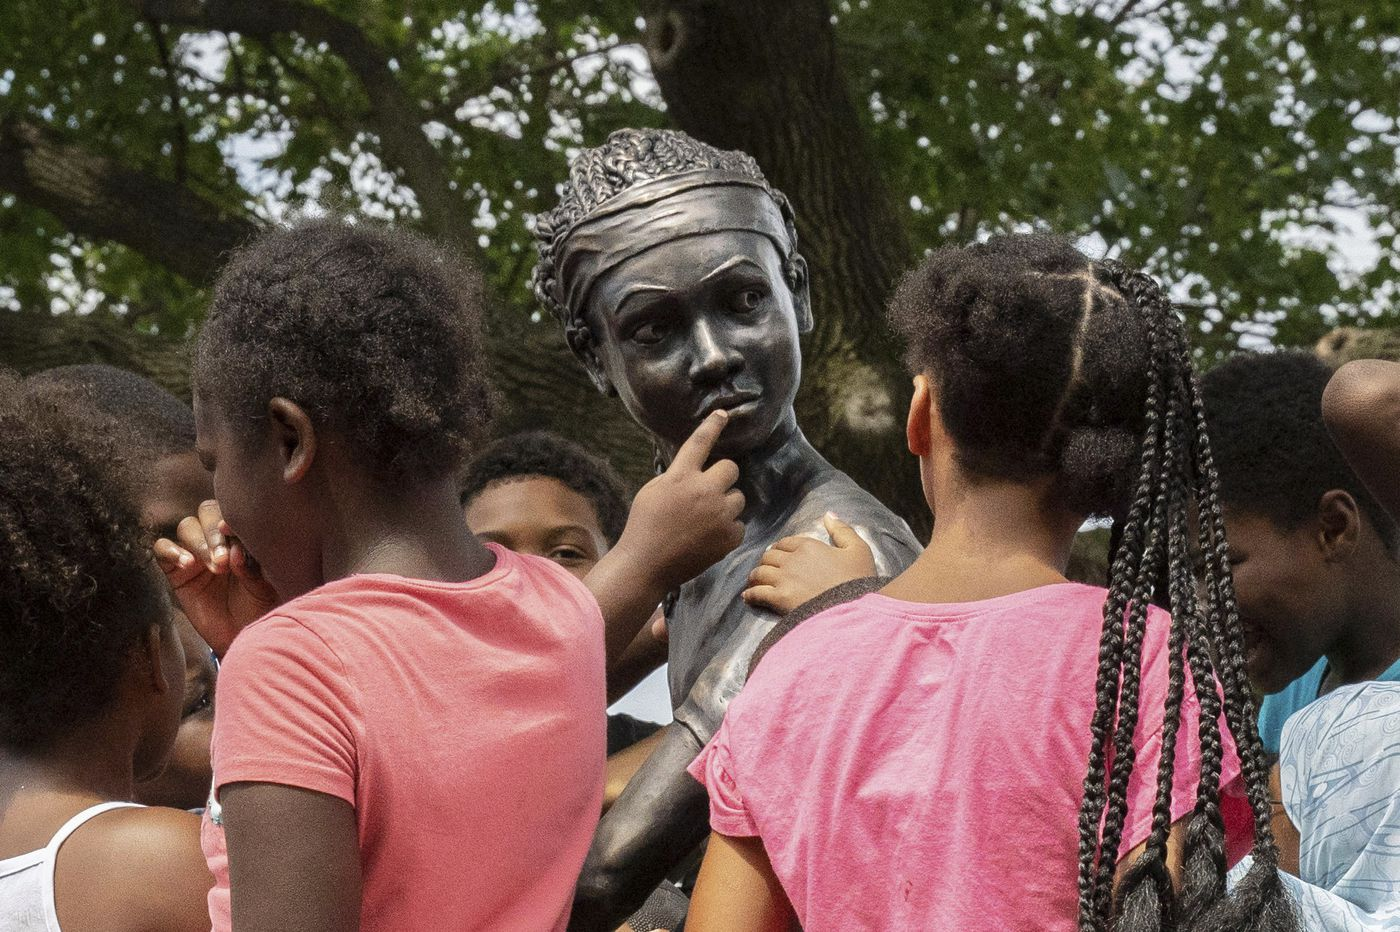 Philly just got its first public statue of an African American girl